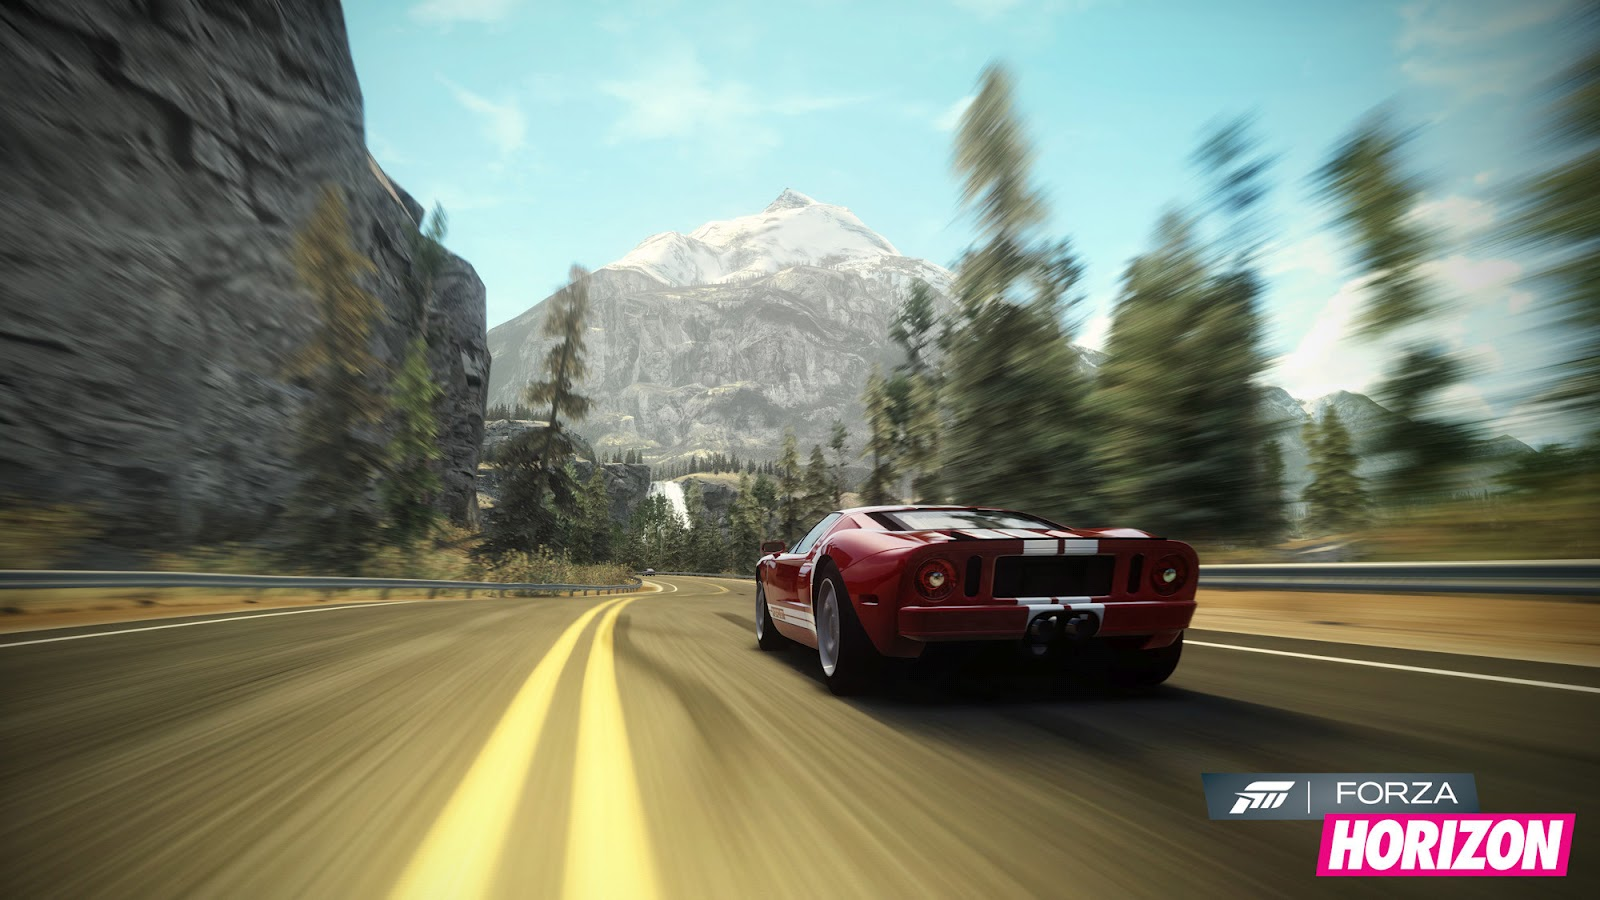 Forza Horizon HD & Widescreen Wallpaper 0.86091476634497